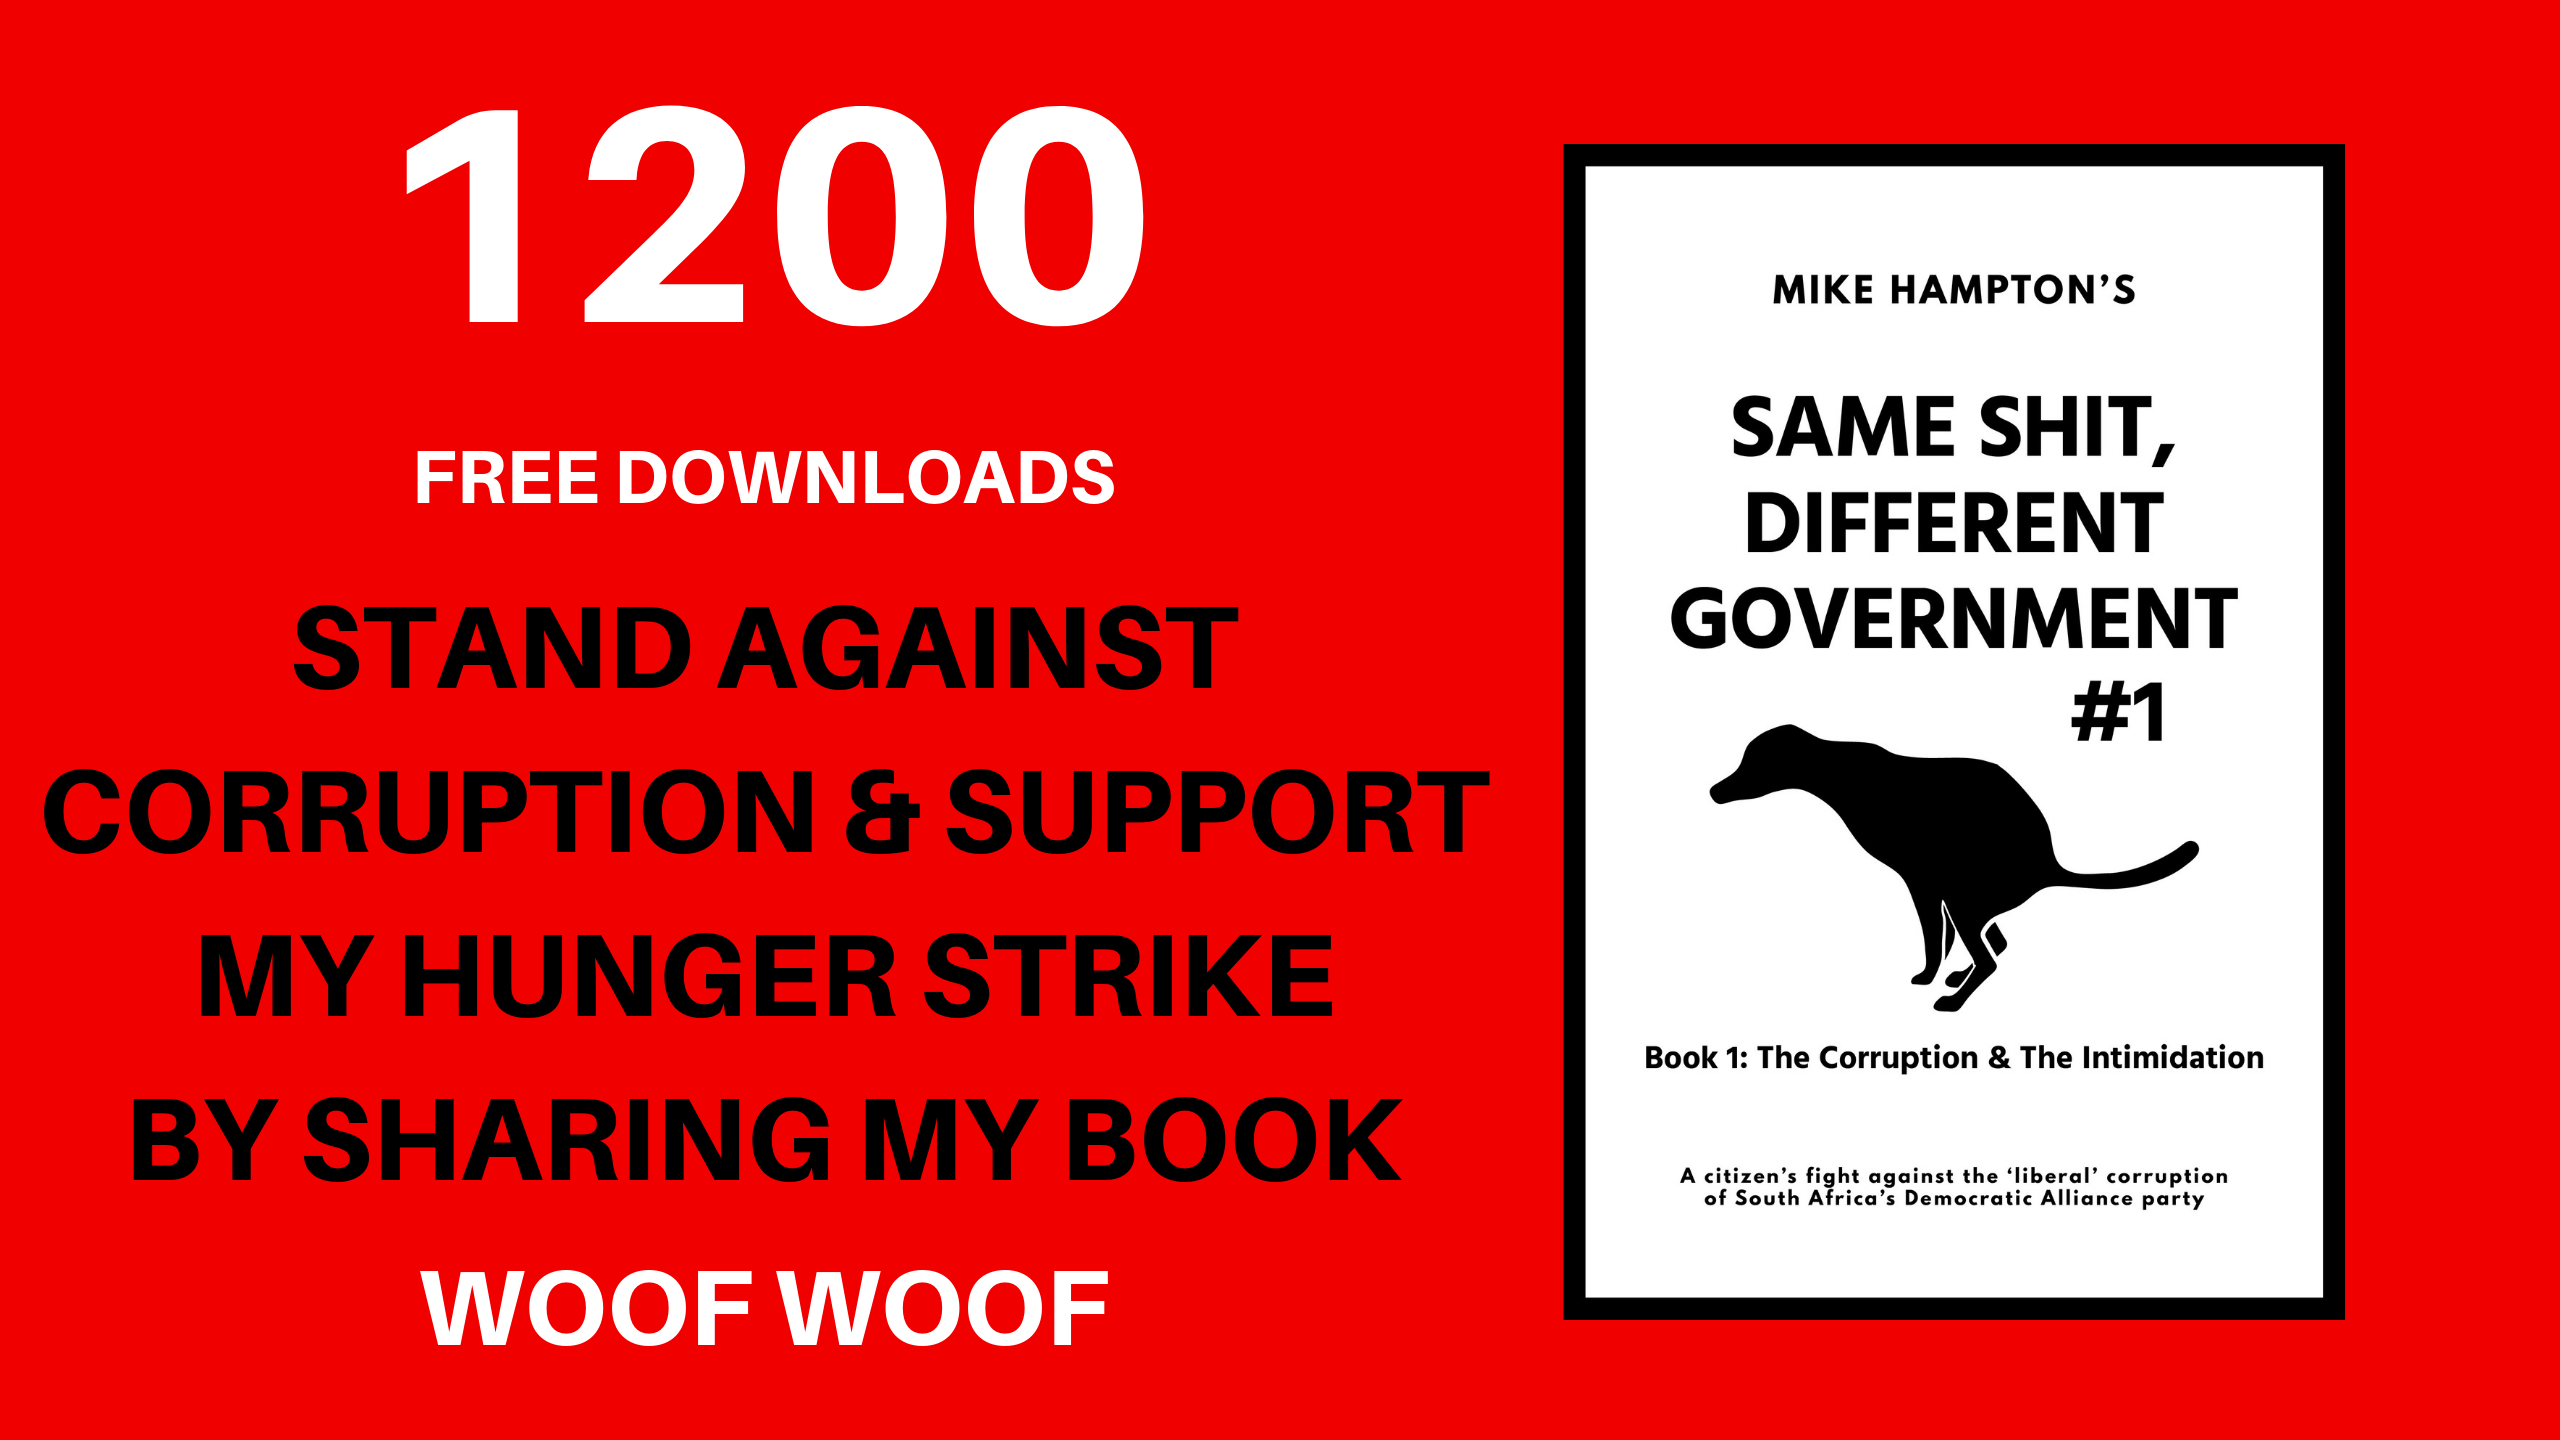 1200 FREE DOWNLOADS Same Shit Different Government - Mike Hampton